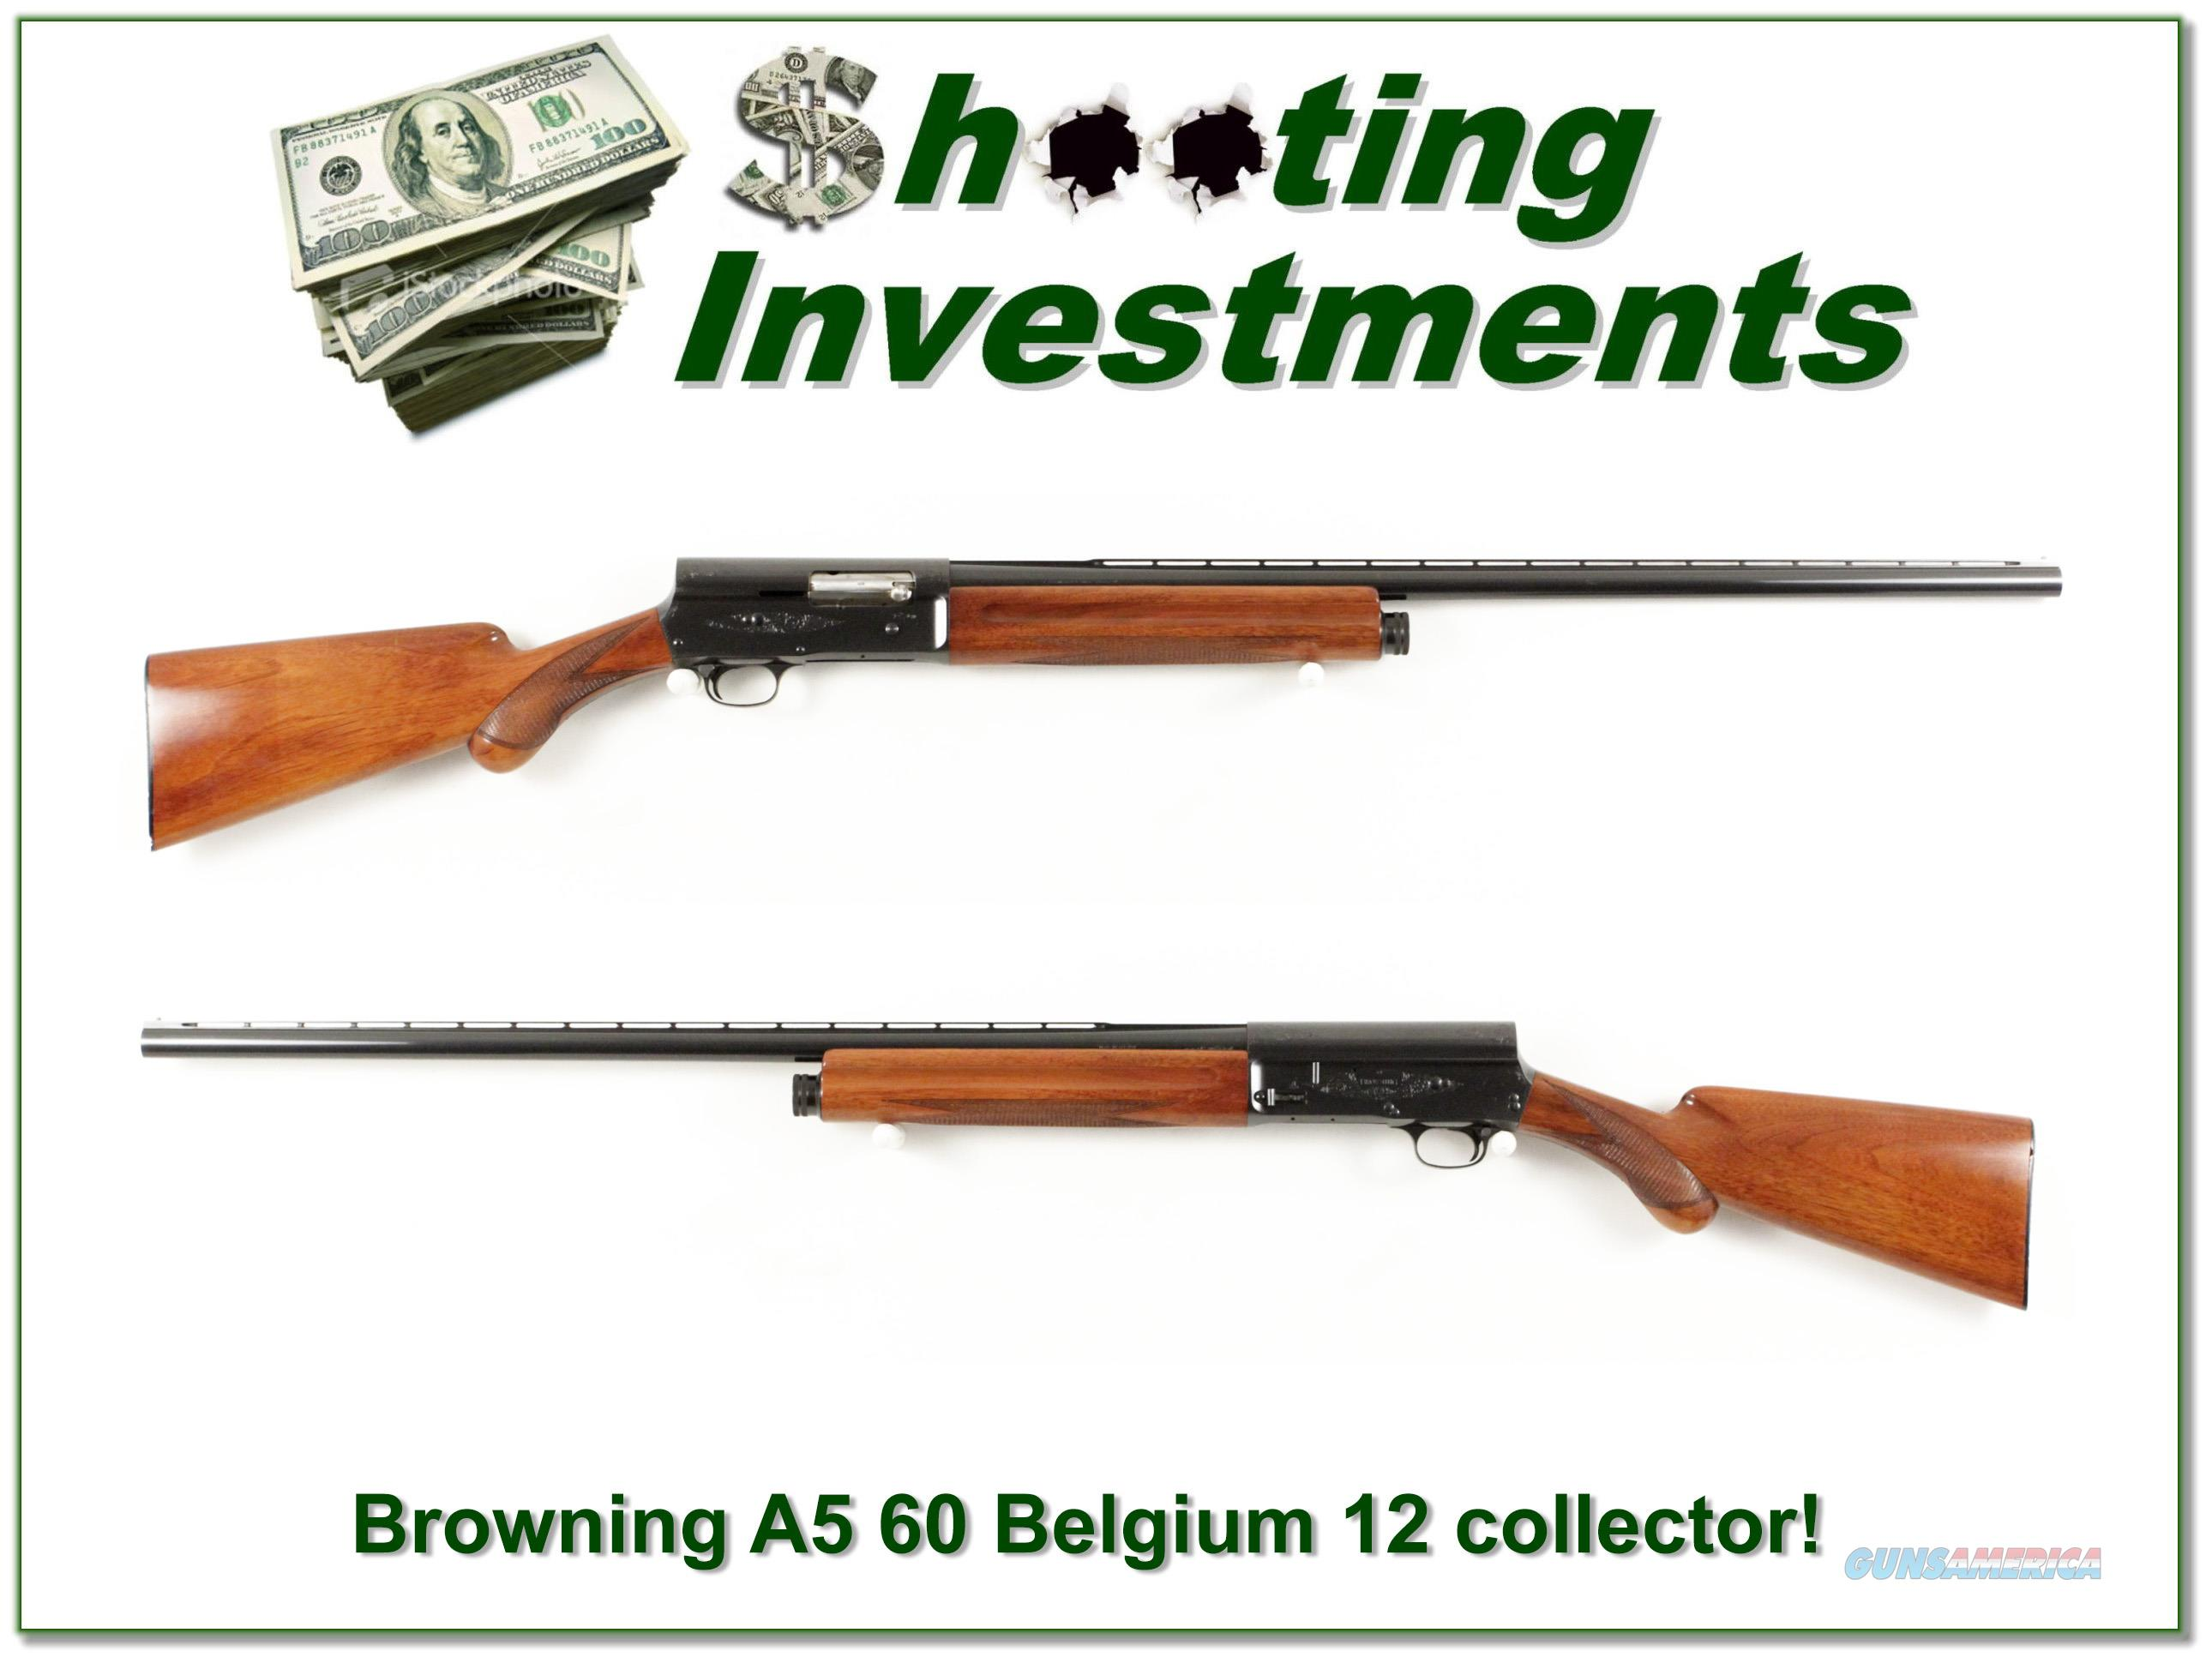 Browning A5 1960 Belgium 12 Gauge Collector VR!  Guns > Shotguns > Browning Shotguns > Autoloaders > Hunting